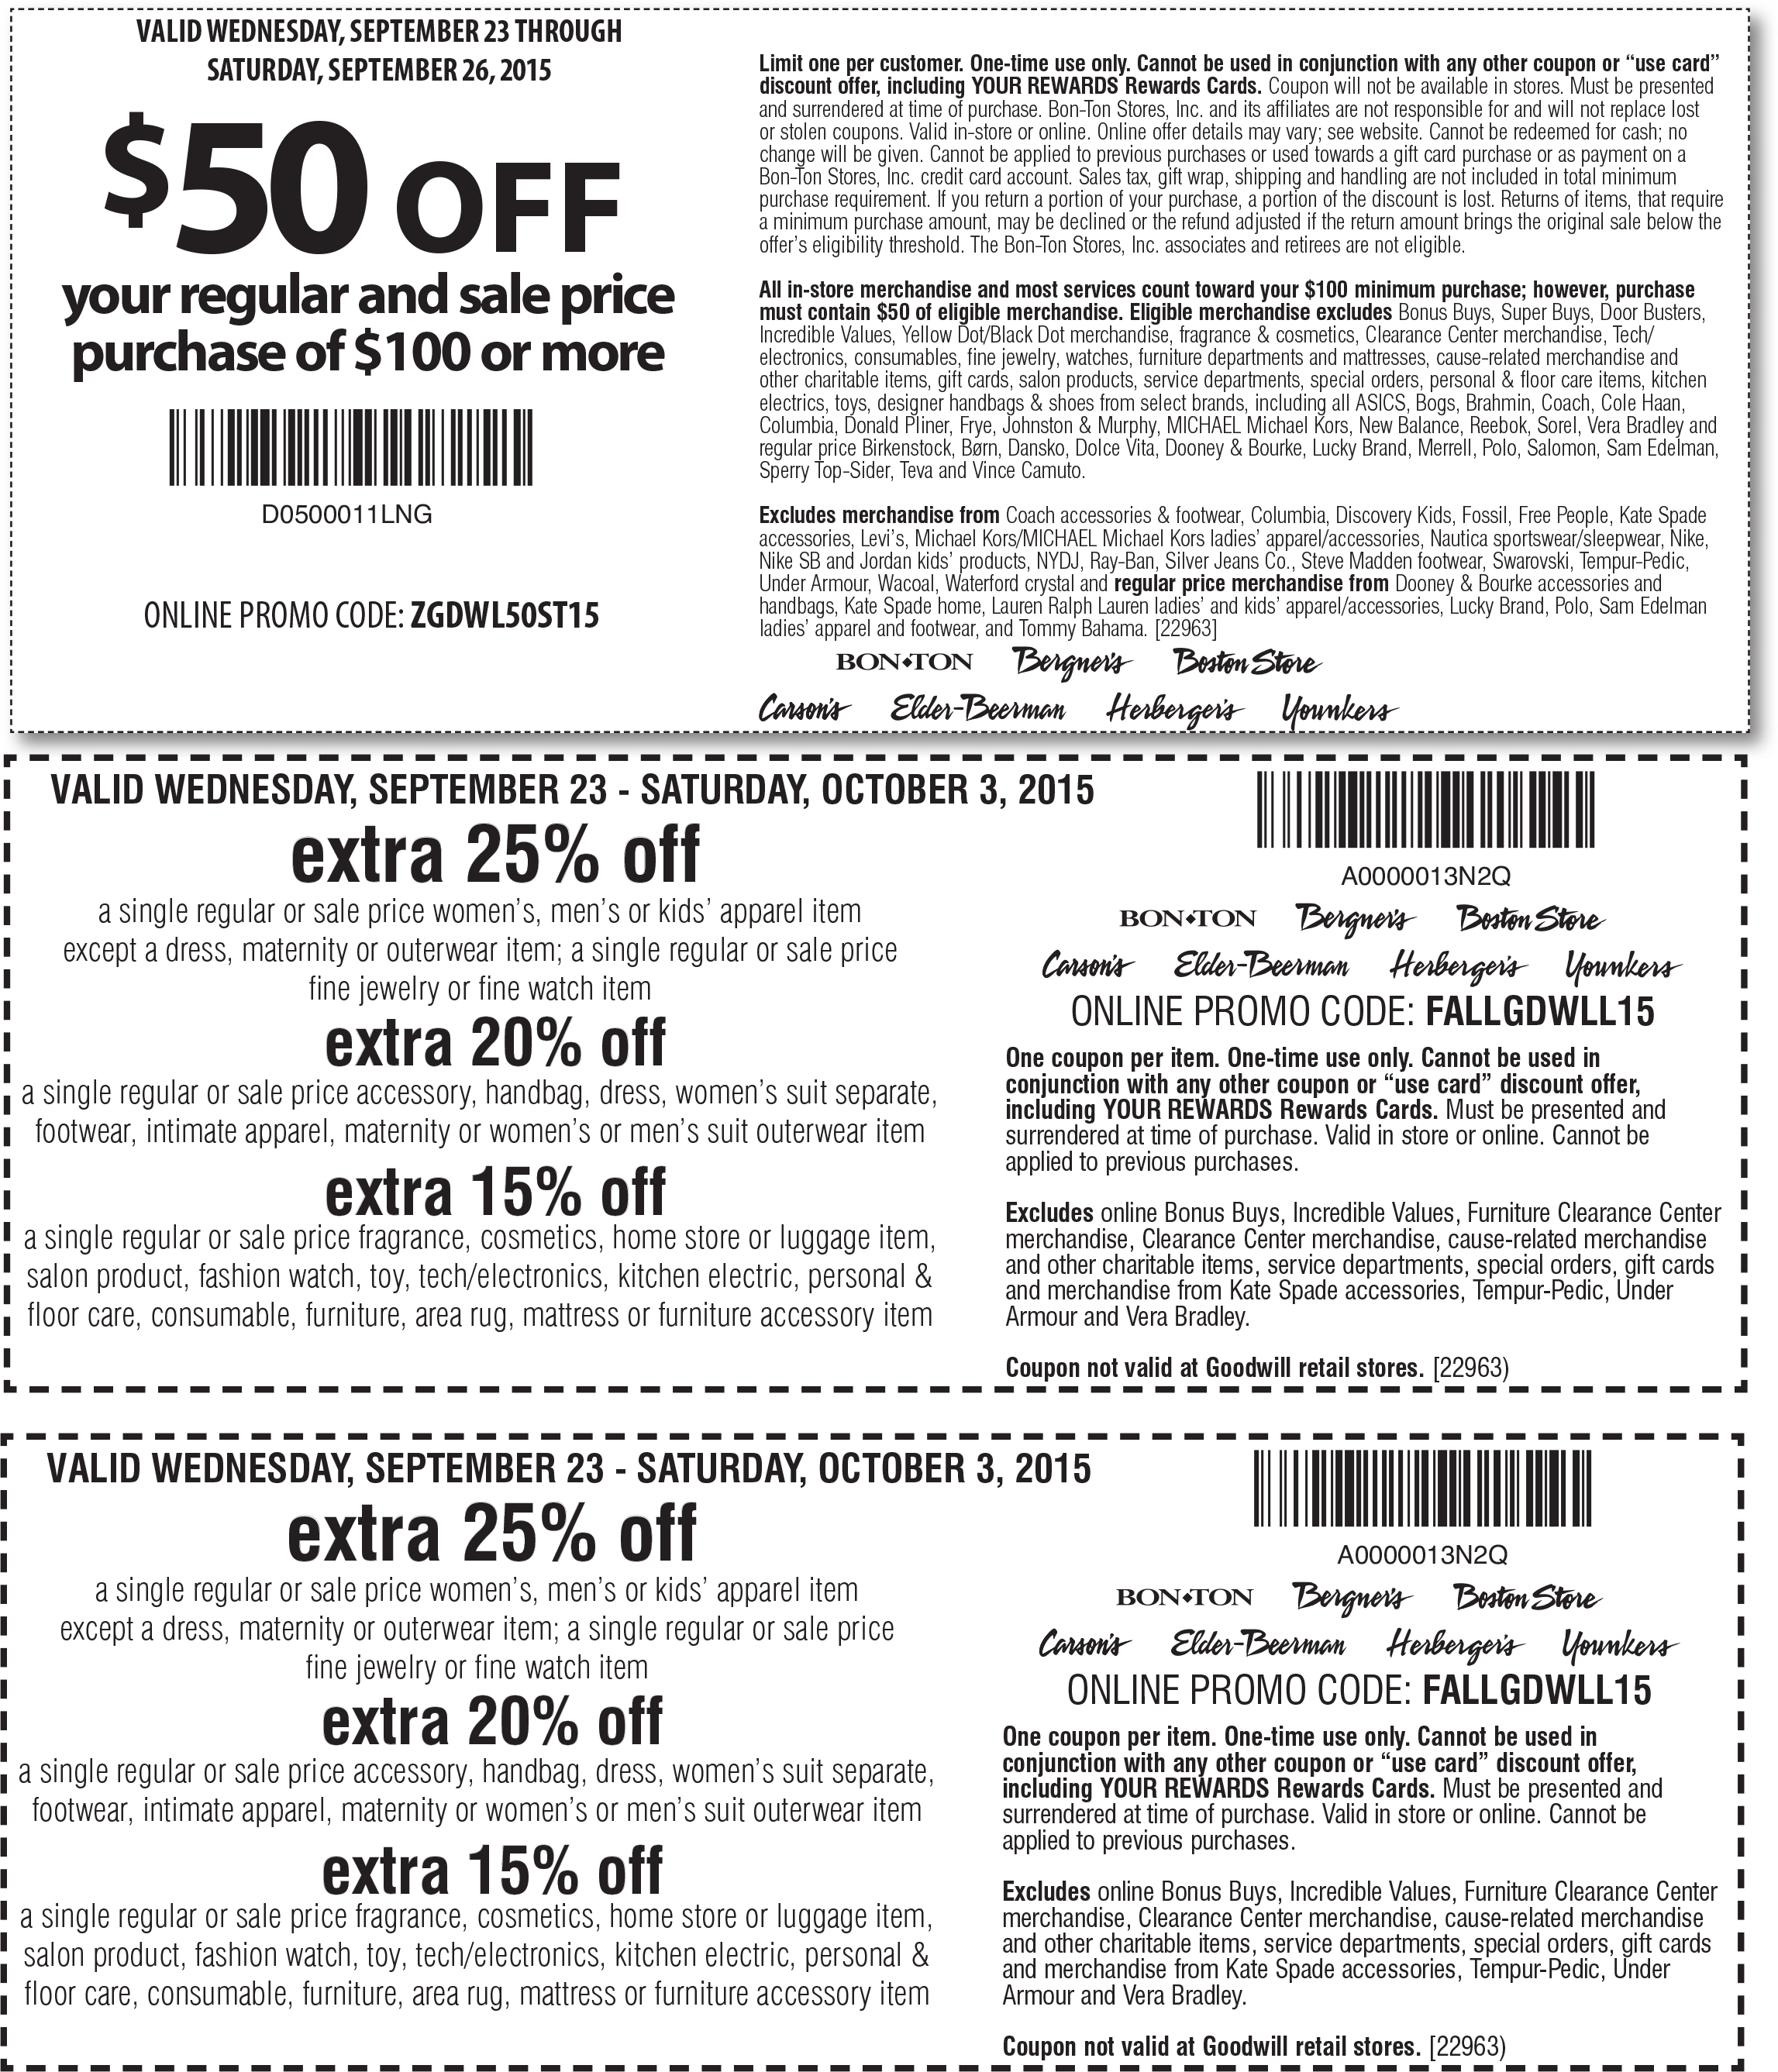 Carsons Coupon December 2016 $50 off $100 & more at Carsons, Bon Ton & sister stores, or online via promo code ZGDWL50ST15